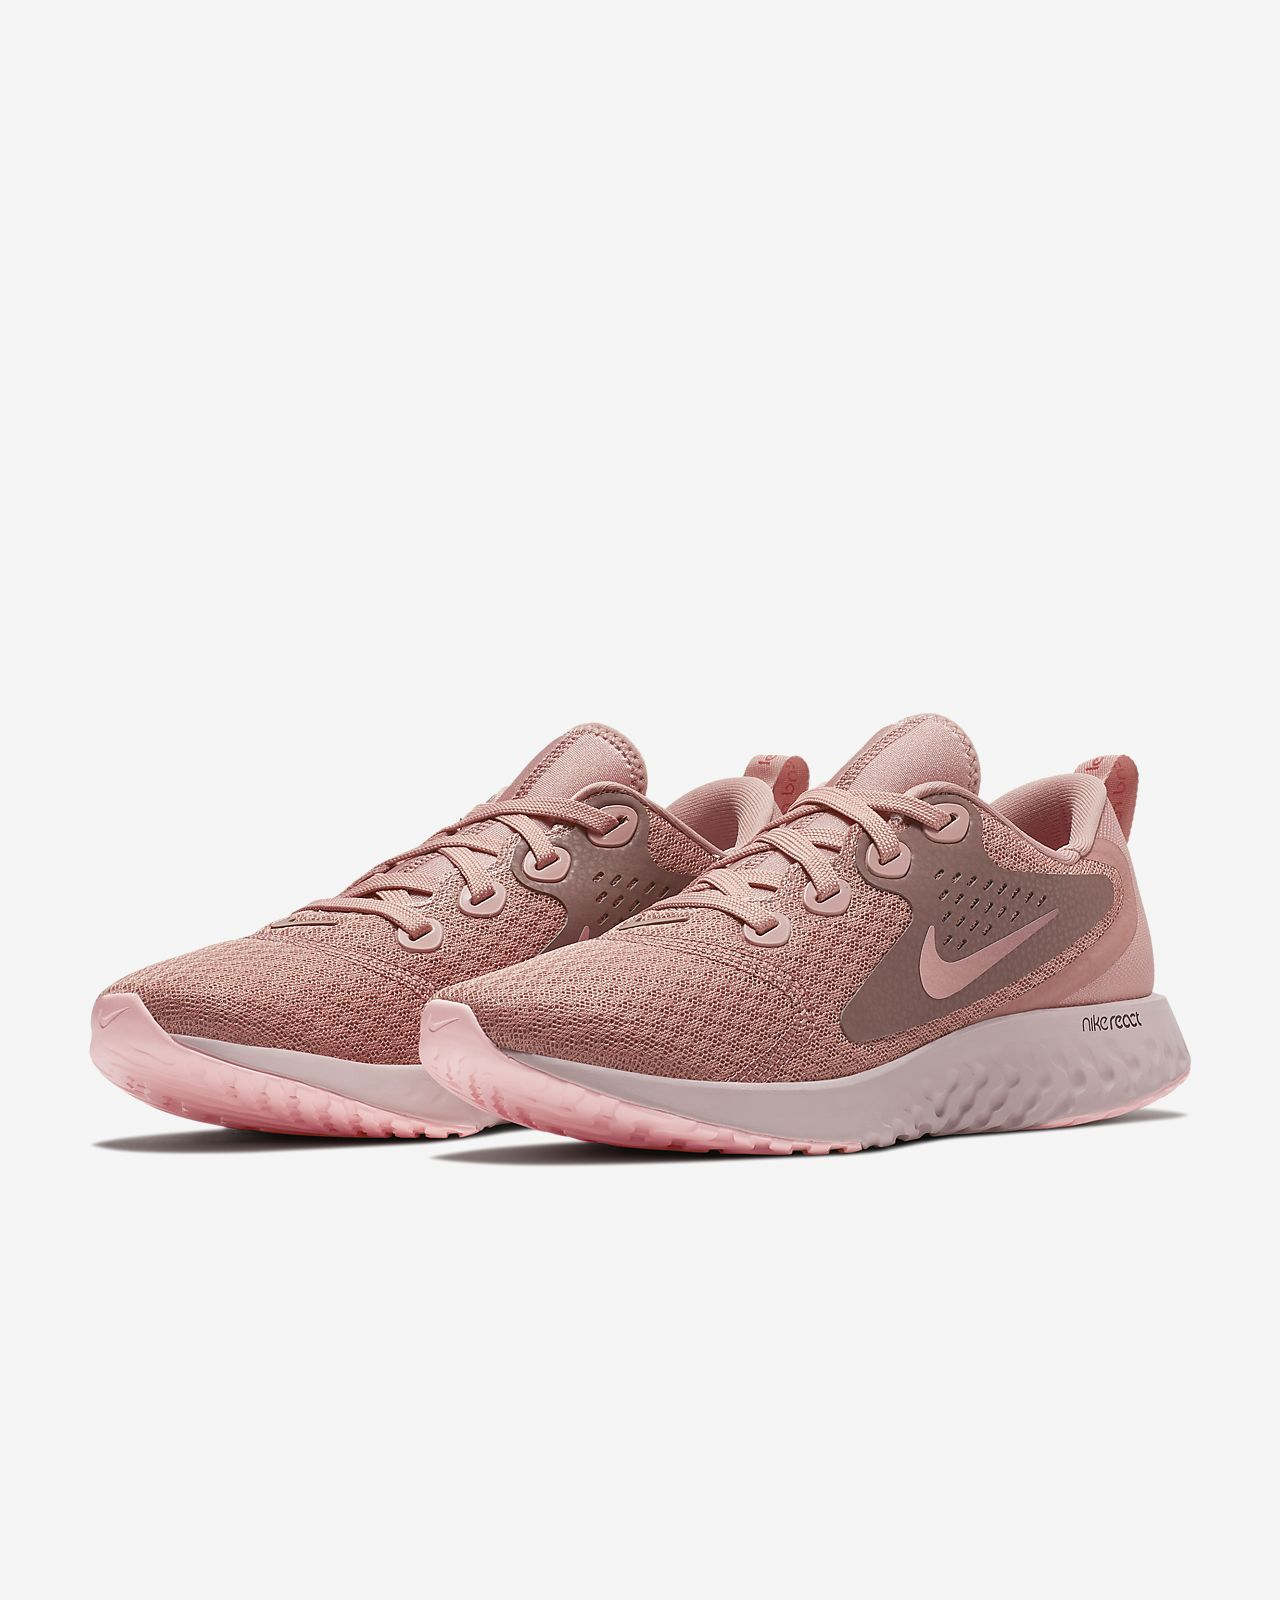 c39c7318230 Nike Women s Running Shoe Legend React in 2019